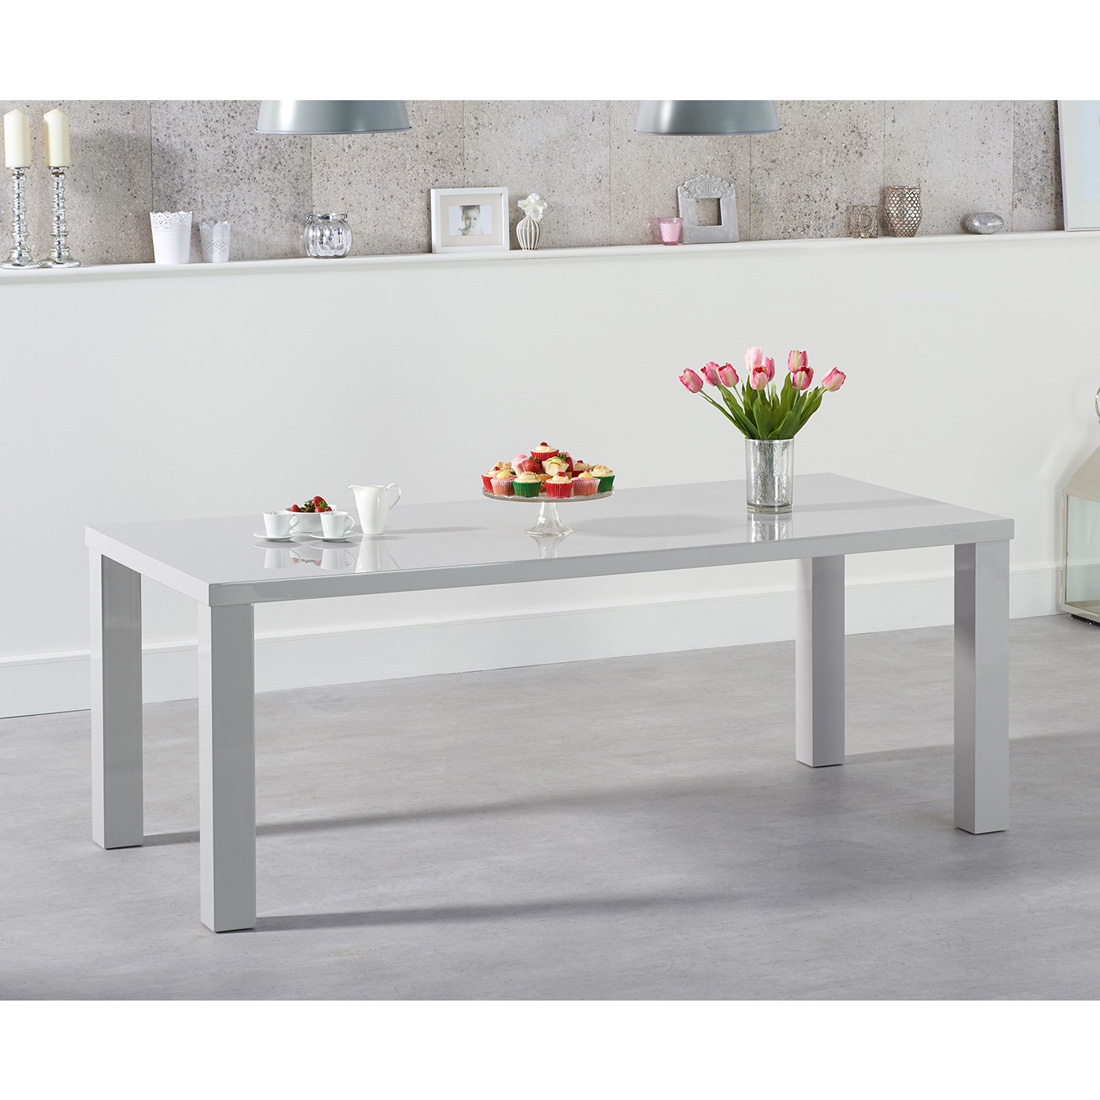 Luna Light Grey Gloss Dining Table - Rectangular 120 - 200 cm Solid Hardwood (Size: Small Table 120 cm)